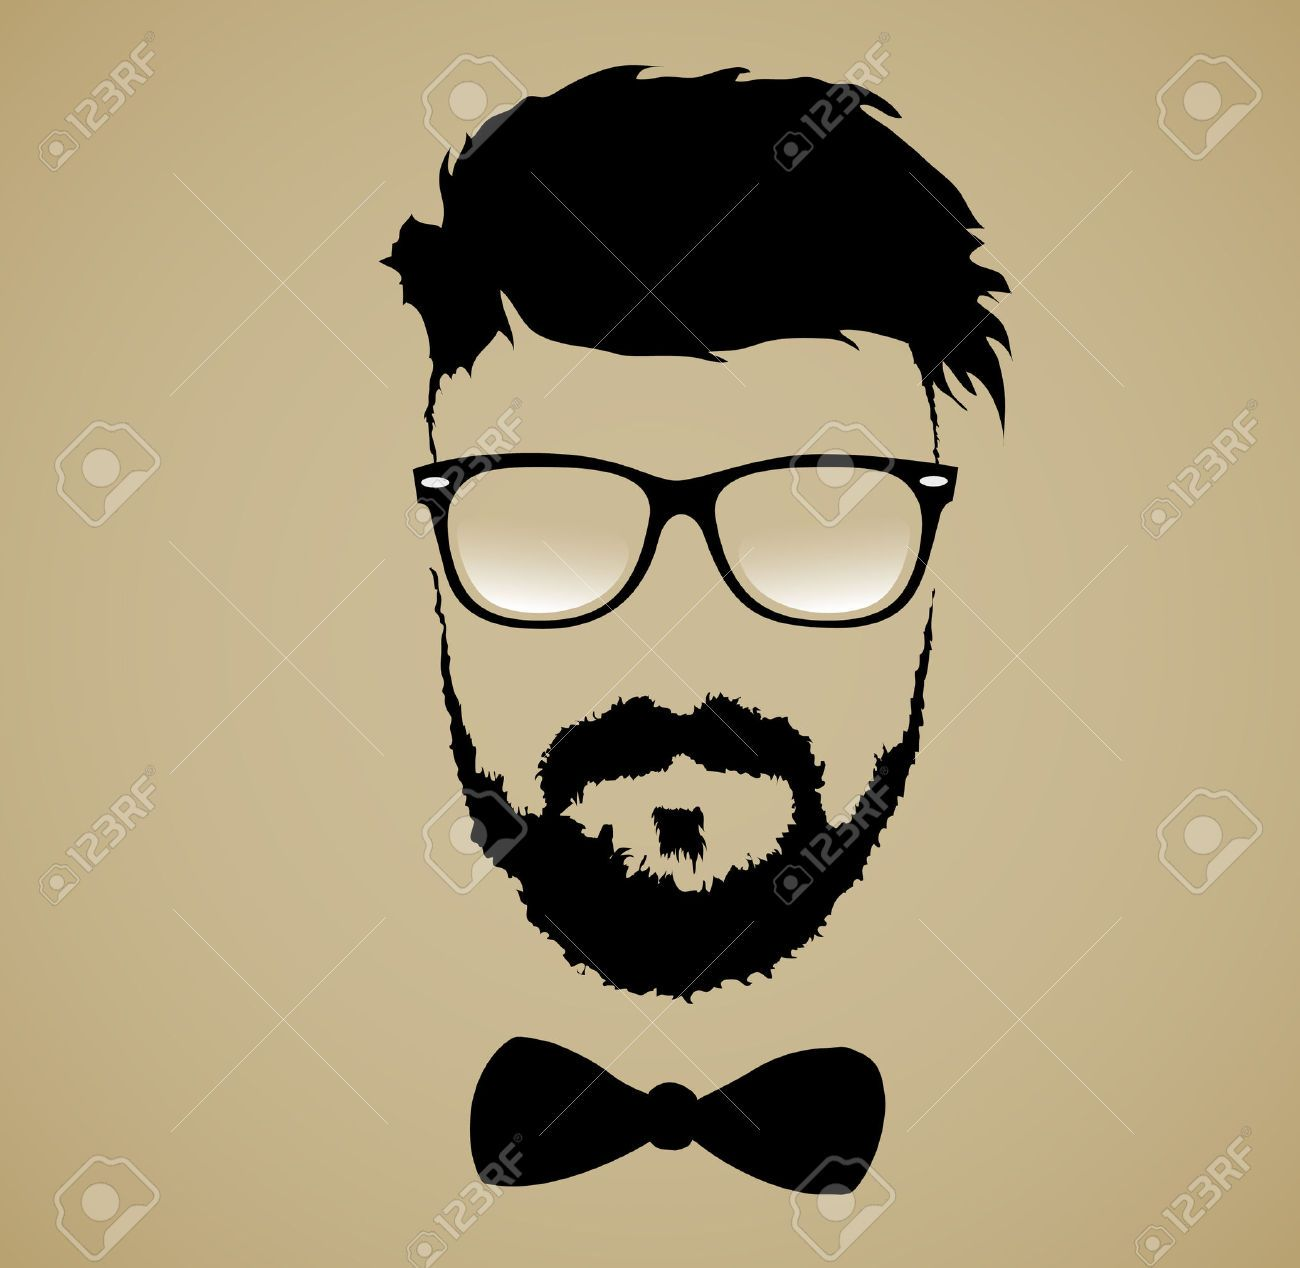 mustache beard glasses hairstyle royalty free cliparts, vectors